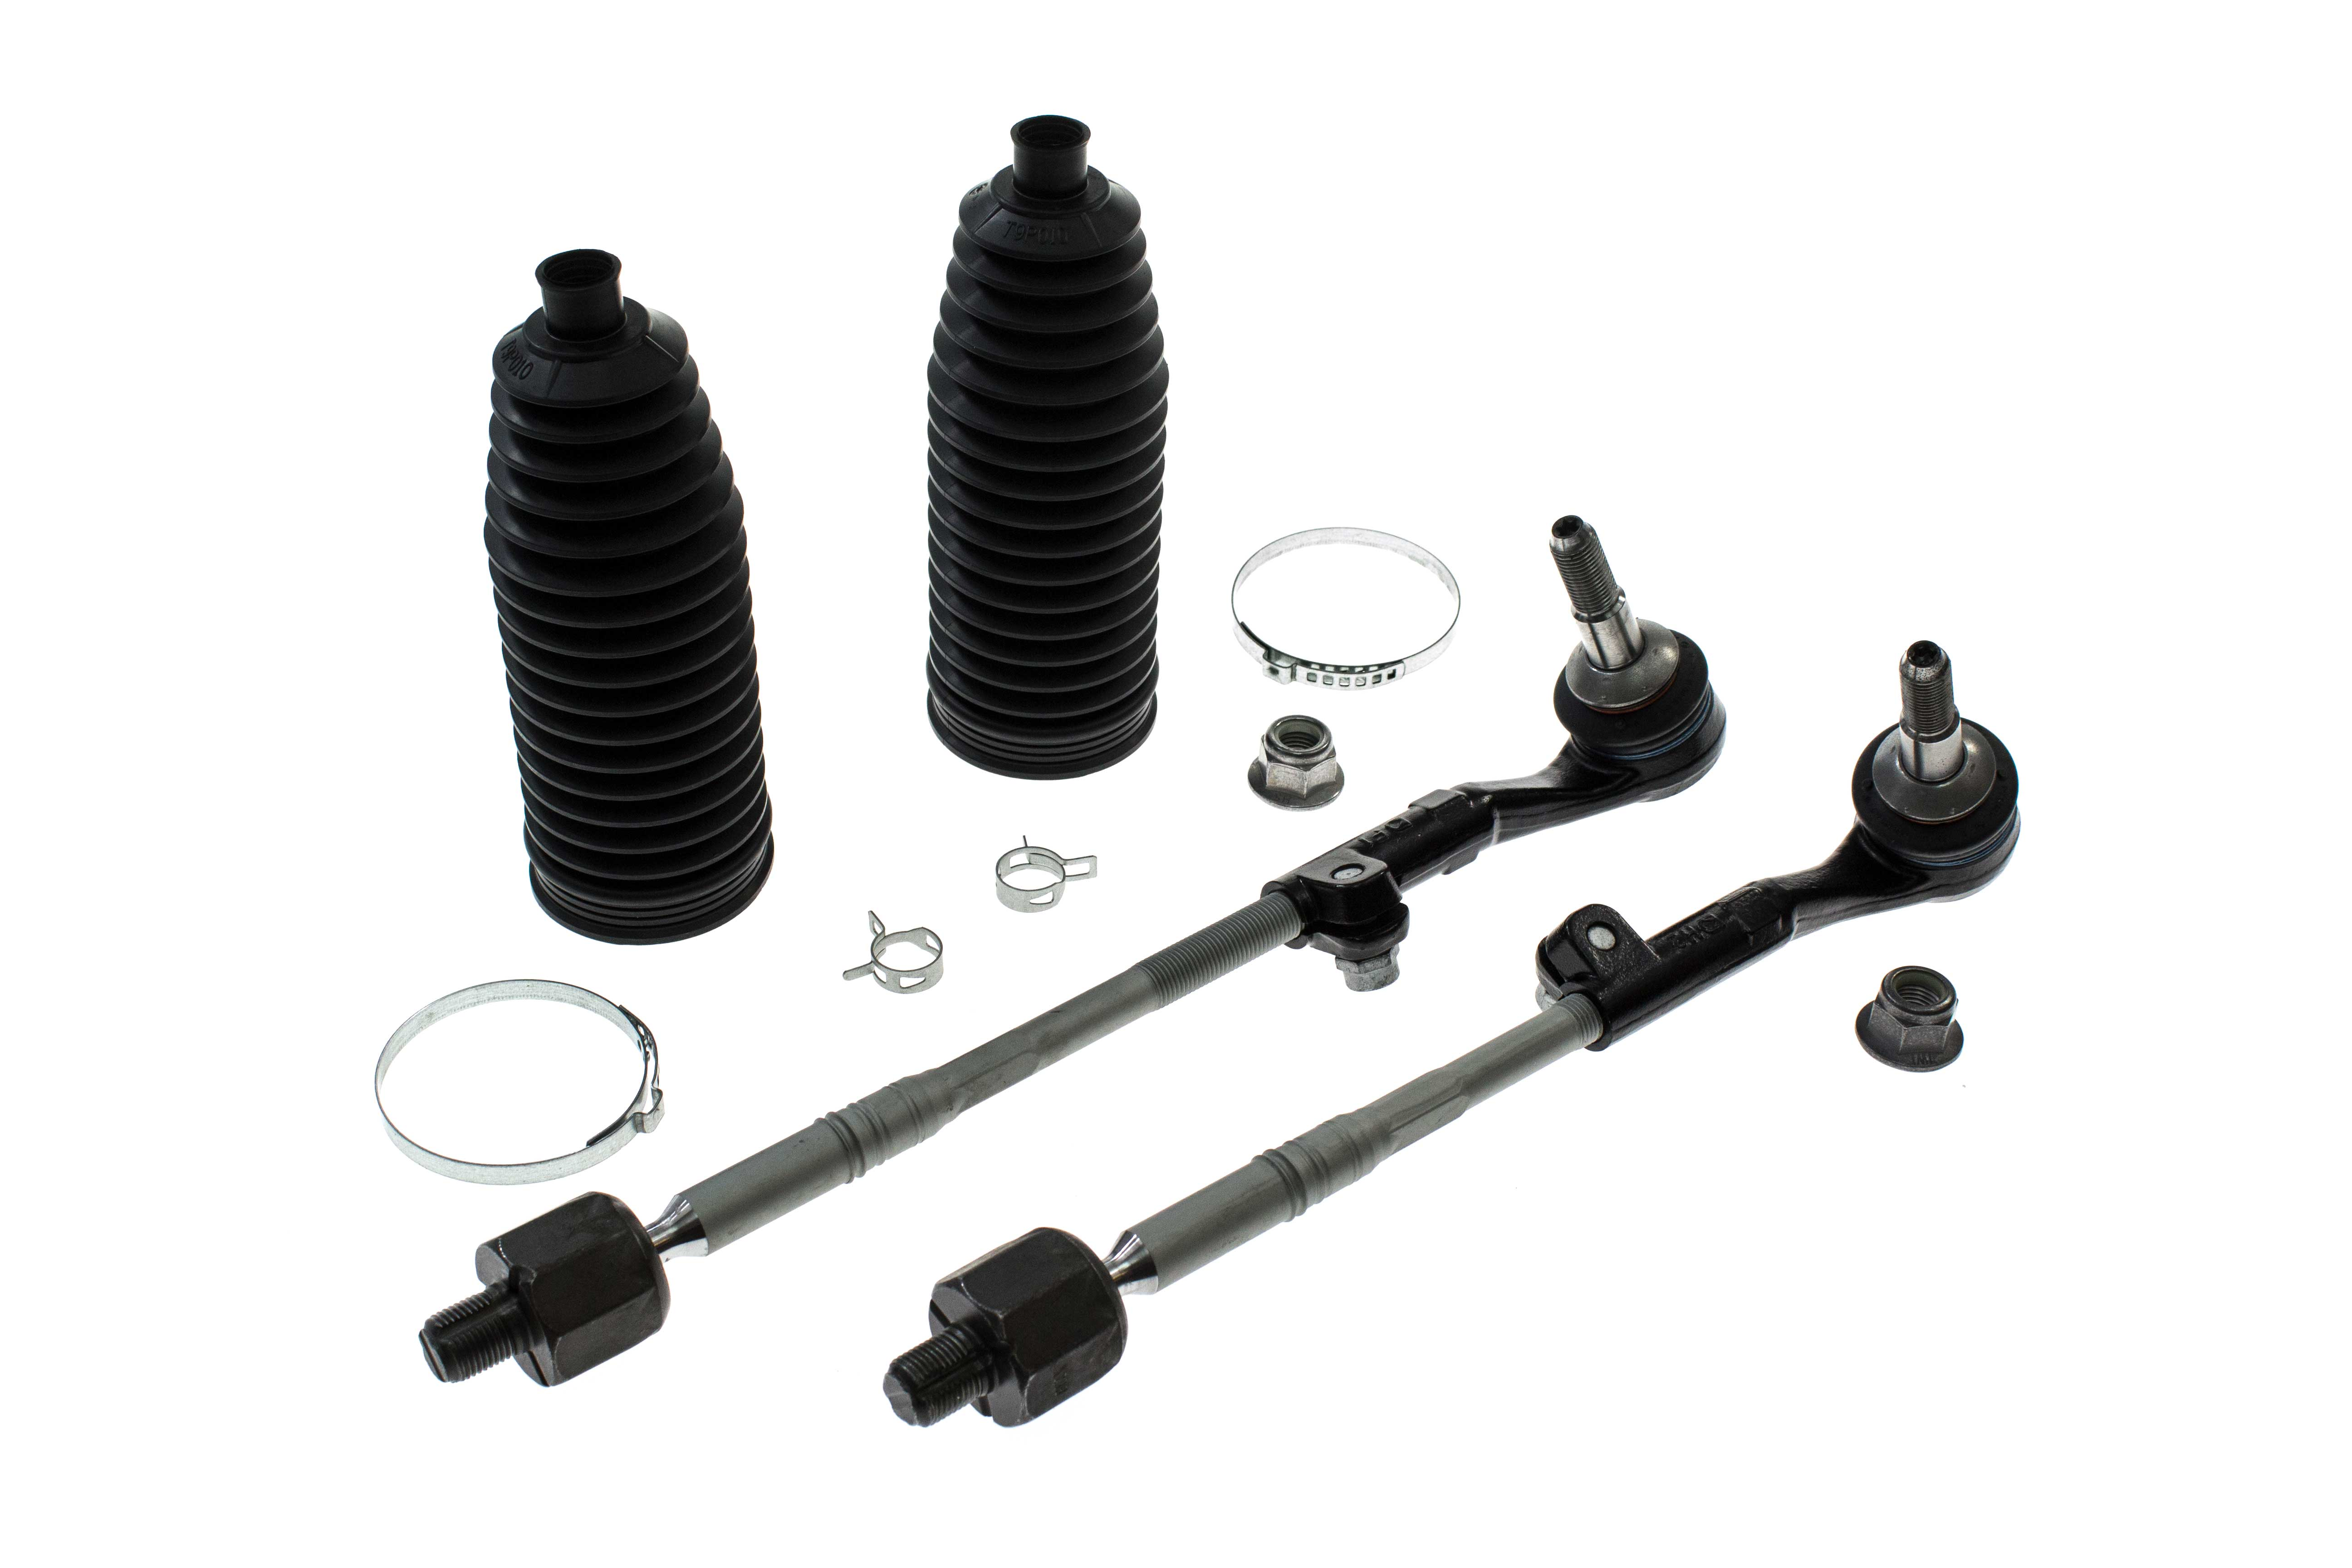 BMW Tie Rod Assembly Parts at Low, Low Prices